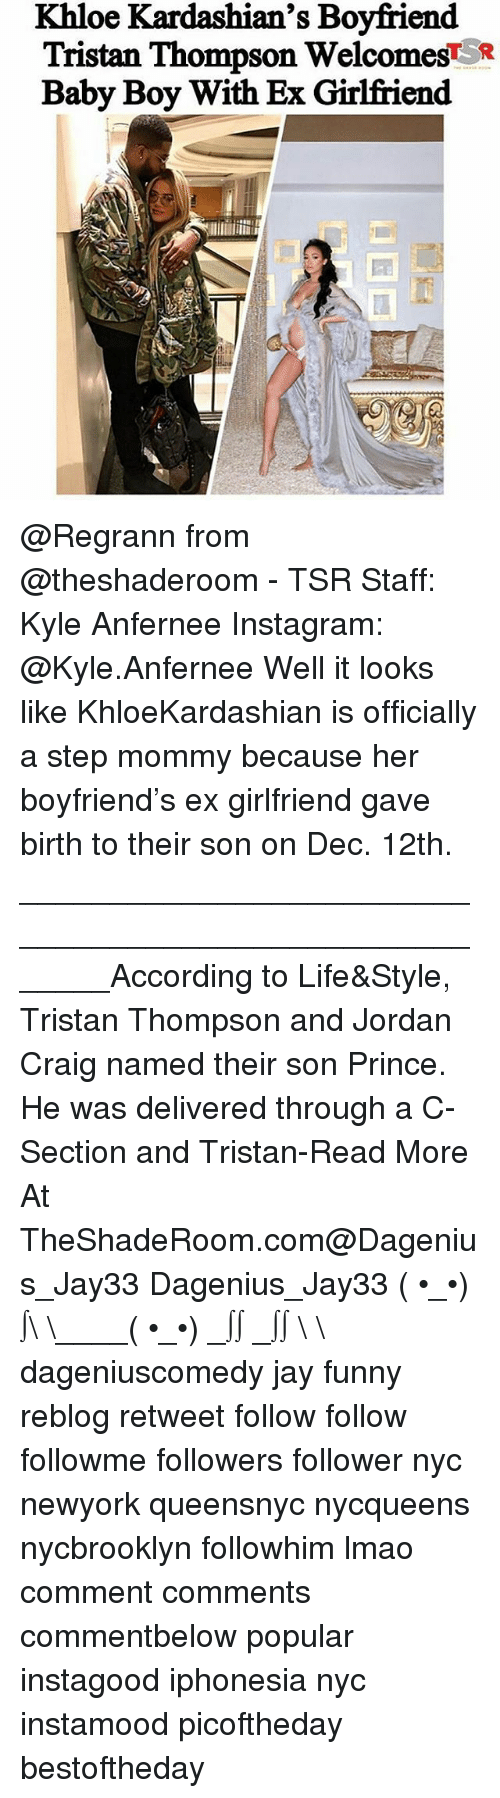 Ex's, Funny, and Instagram: Khloe Kardashian's Boyfriend  Tristan Thompson Welcomes*  Baby Boy With Ex Girlfriend @Regrann from @theshaderoom - TSR Staff: Kyle Anfernee Instagram: @Kyle.Anfernee Well it looks like KhloeKardashian is officially a step mommy because her boyfriend's ex girlfriend gave birth to their son on Dec. 12th. _______________________________________________________According to Life&Style, Tristan Thompson and Jordan Craig named their son Prince. He was delivered through a C-Section and Tristan-Read More At TheShadeRoom.com@Dagenius_Jay33 Dagenius_Jay33 ( •_•) ∫\ \____( •_•) _∫∫ _∫∫ɯ \ \ dageniuscomedy jay funny reblog retweet follow follow followme followers follower nyc newyork queensnyc nycqueens nycbrooklyn followhim lmao comment comments commentbelow popular instagood iphonesia nyc instamood picoftheday bestoftheday